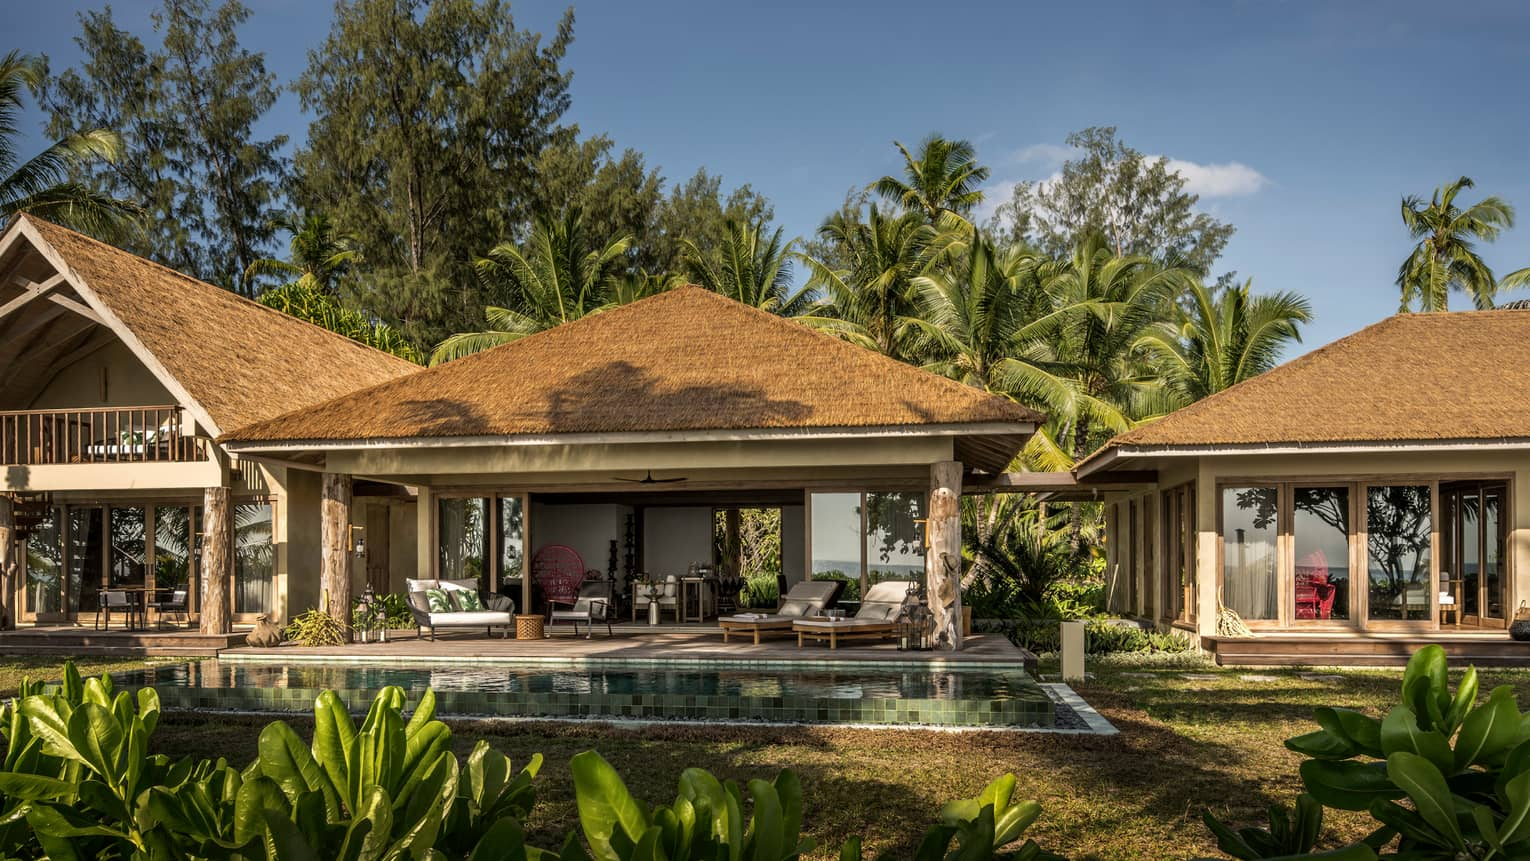 Airy tropical accommodations surrounded by palm trees, with plunge pools